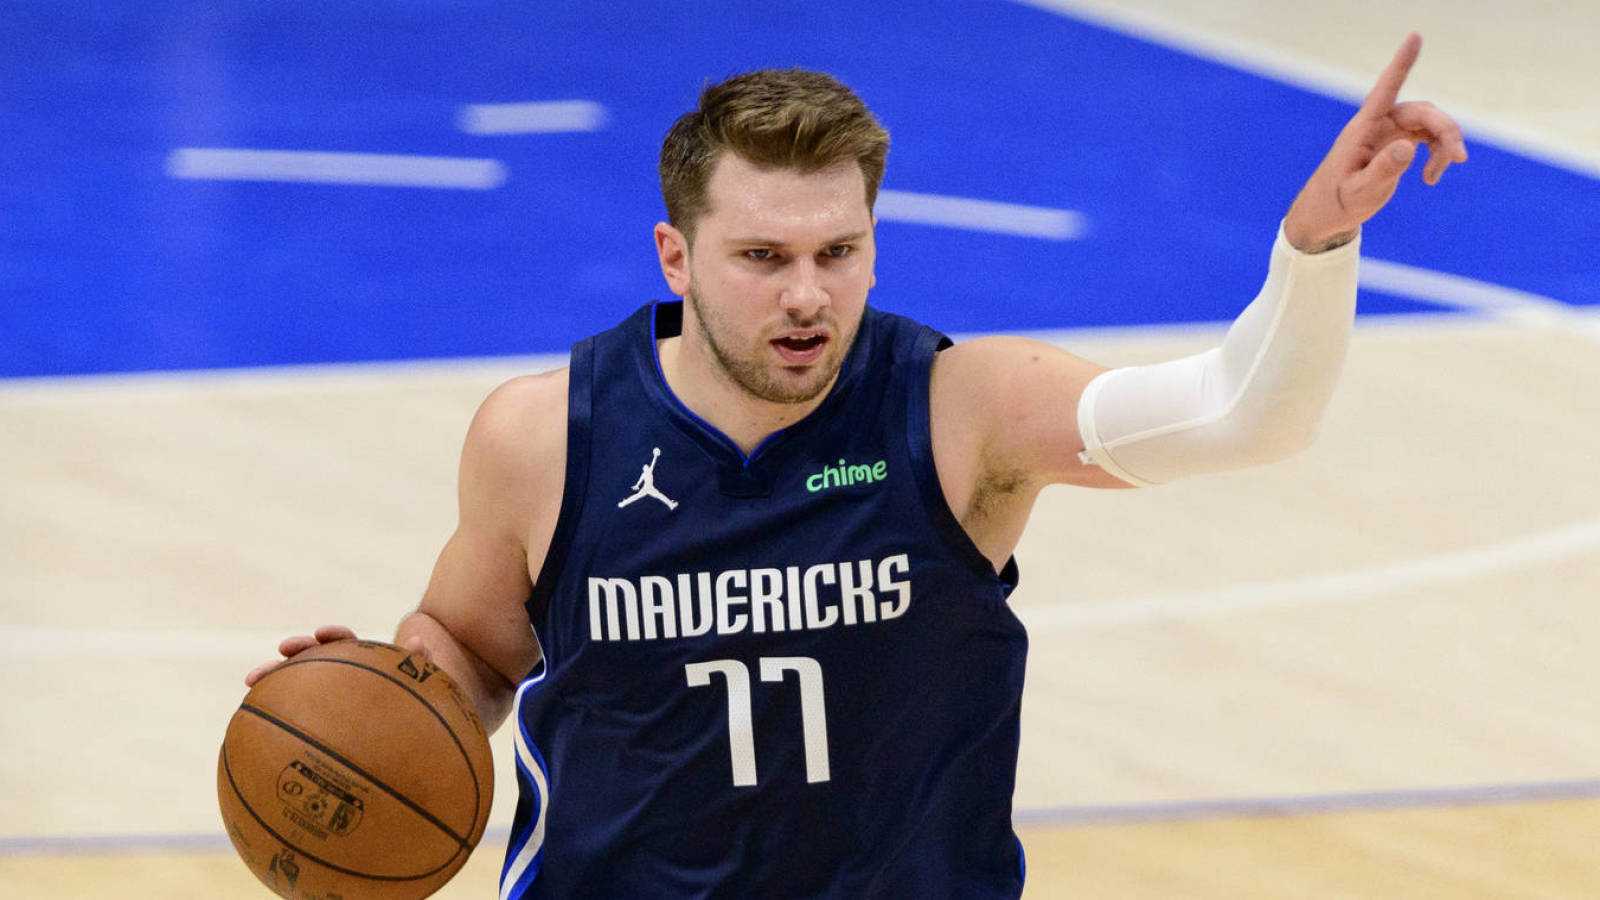 Luka Doncic helps Slovenia win a place in the Tokyo Olympics